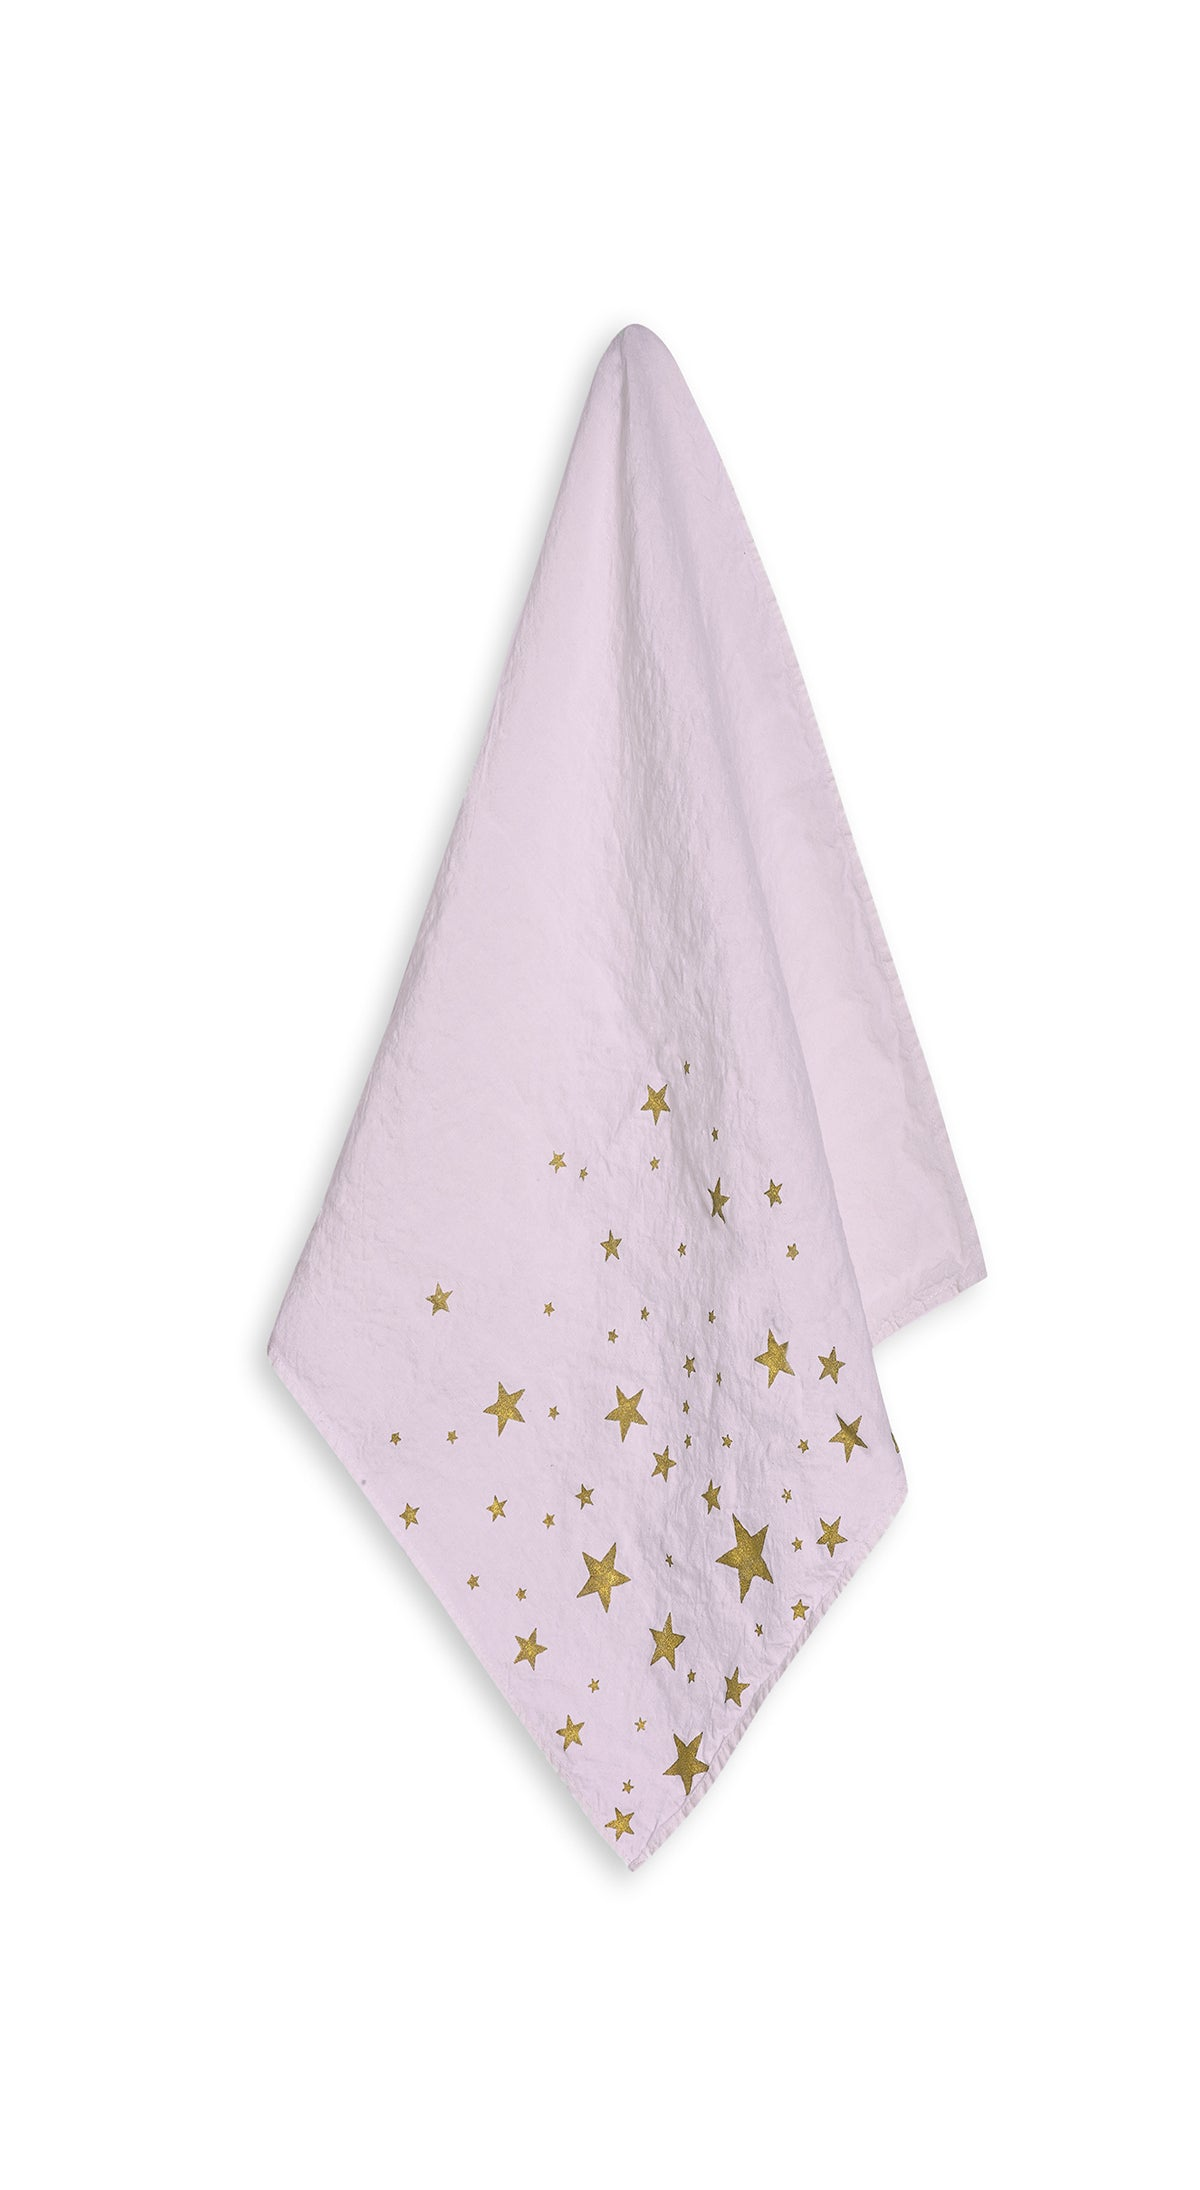 Falling Stars Linen Napkin in Pale Pink with Gold Stars